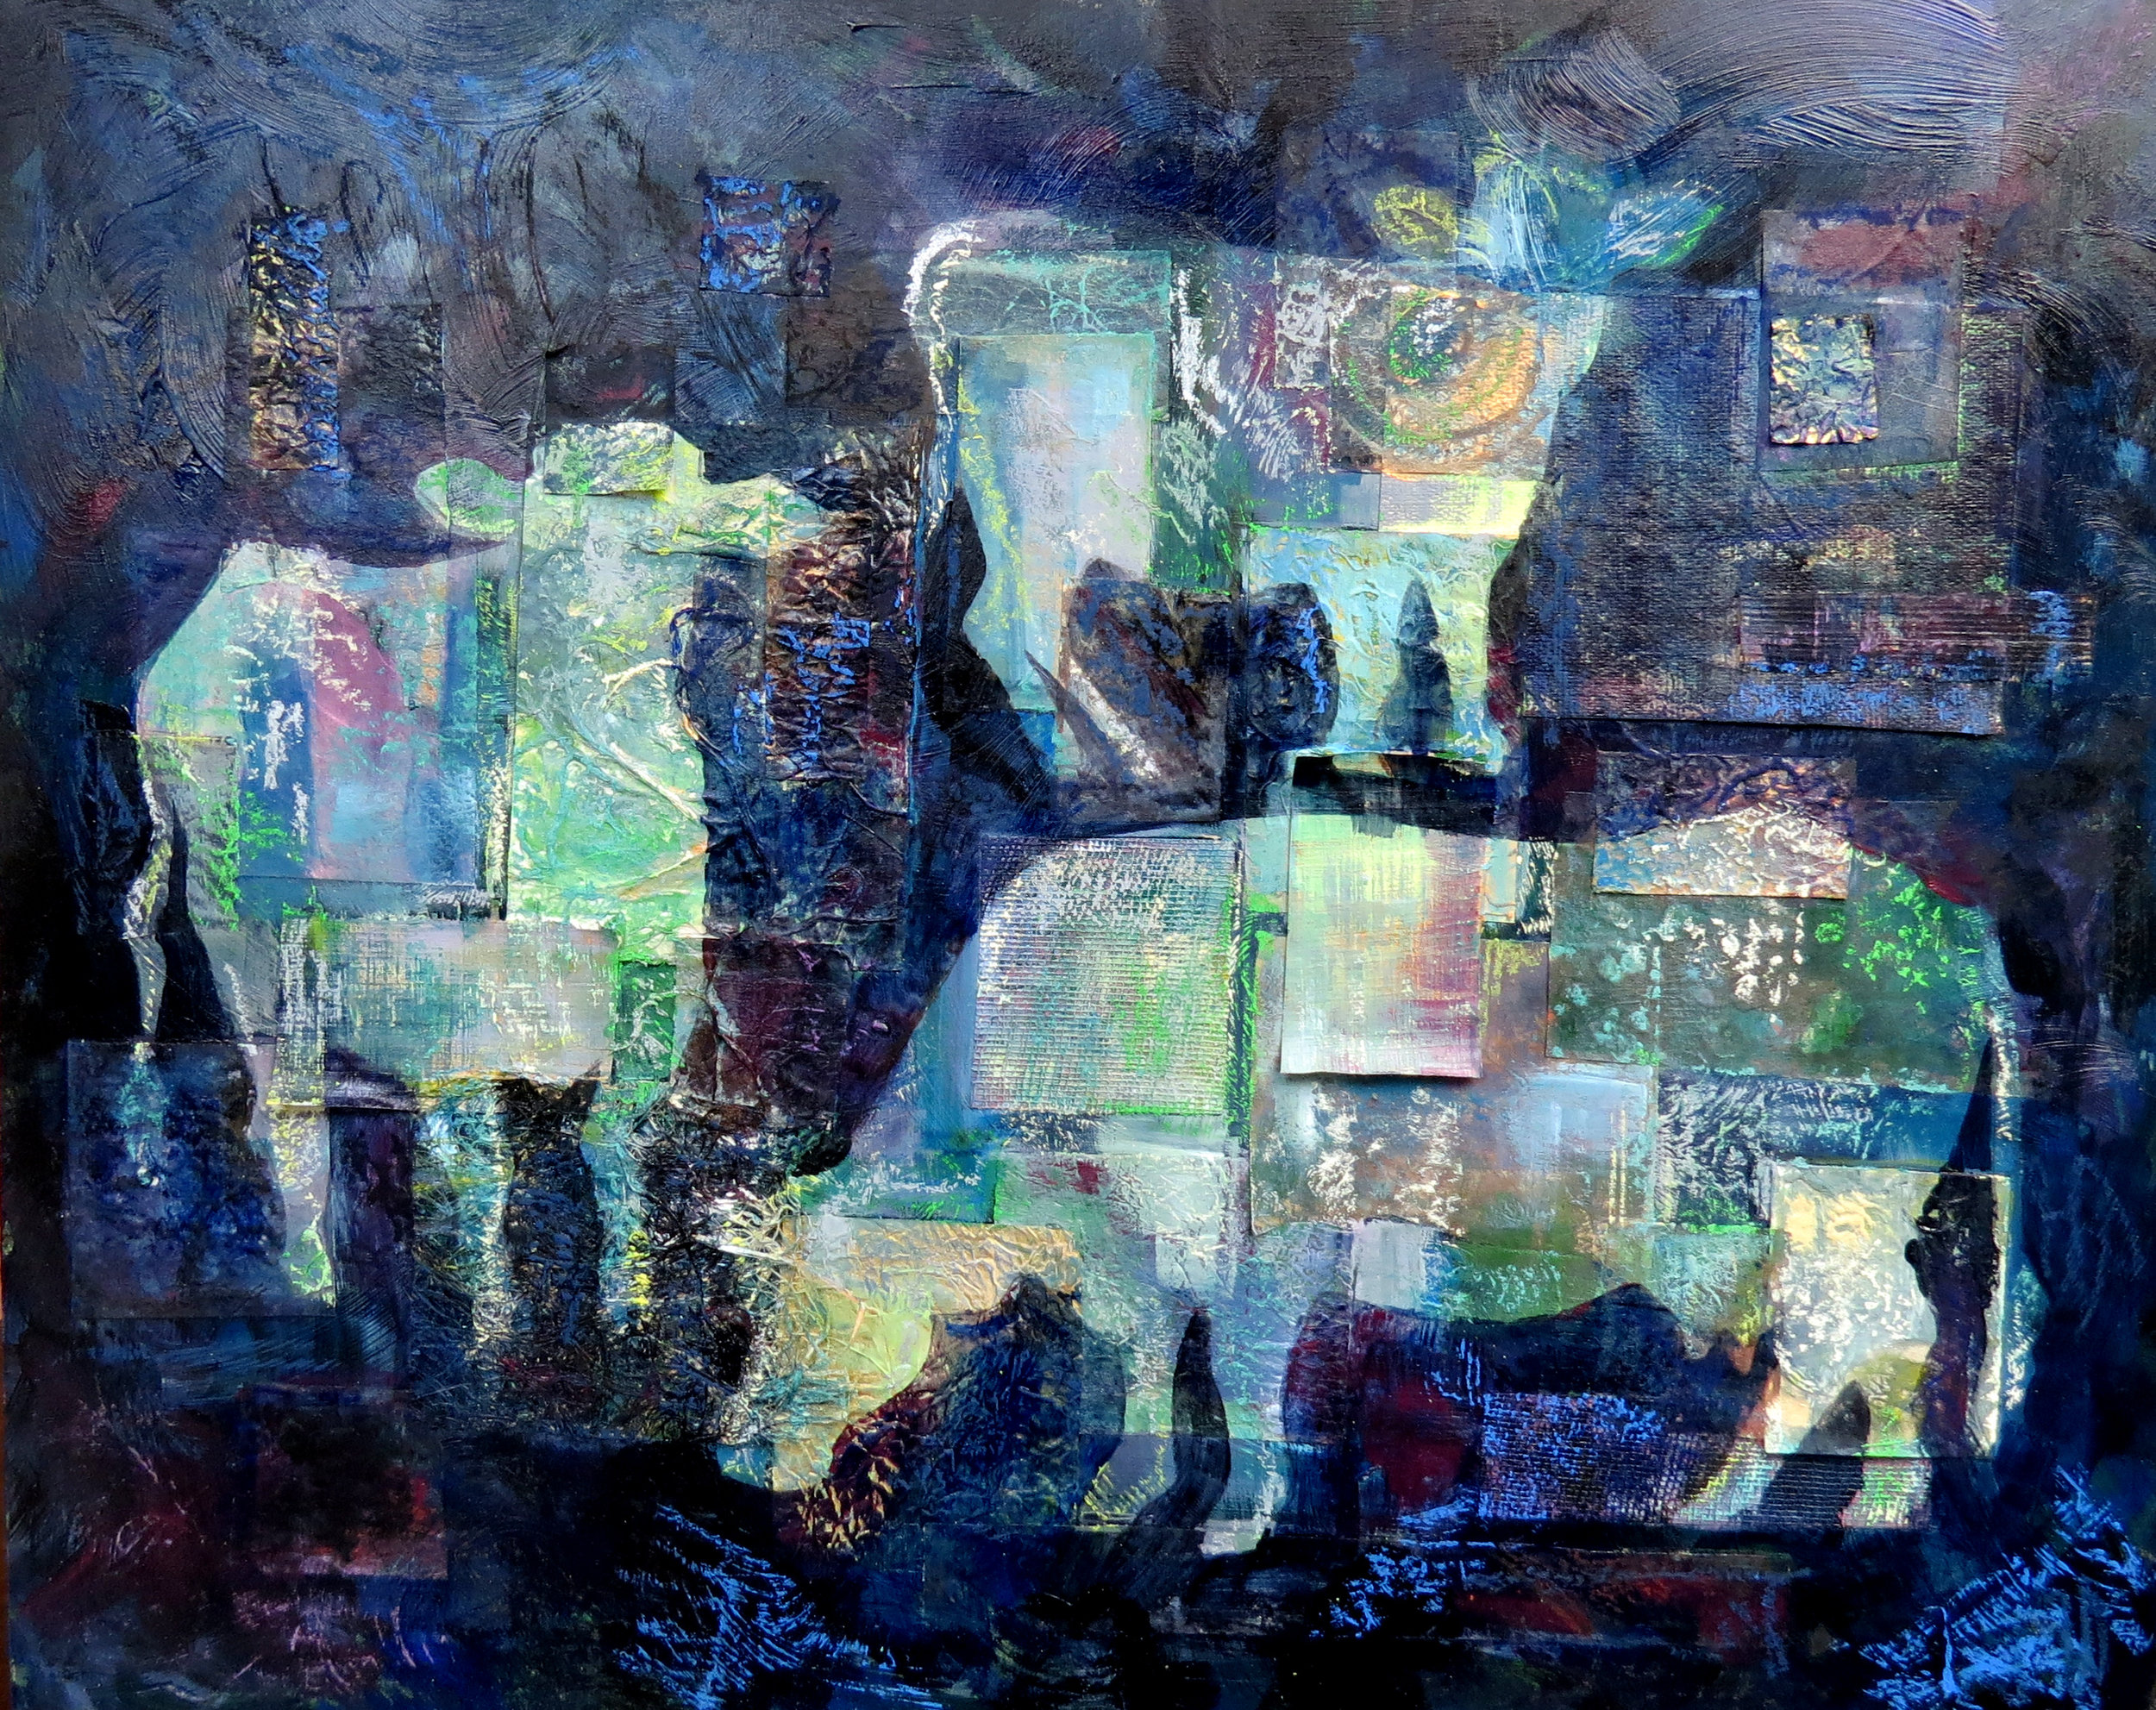 Cows in Blue